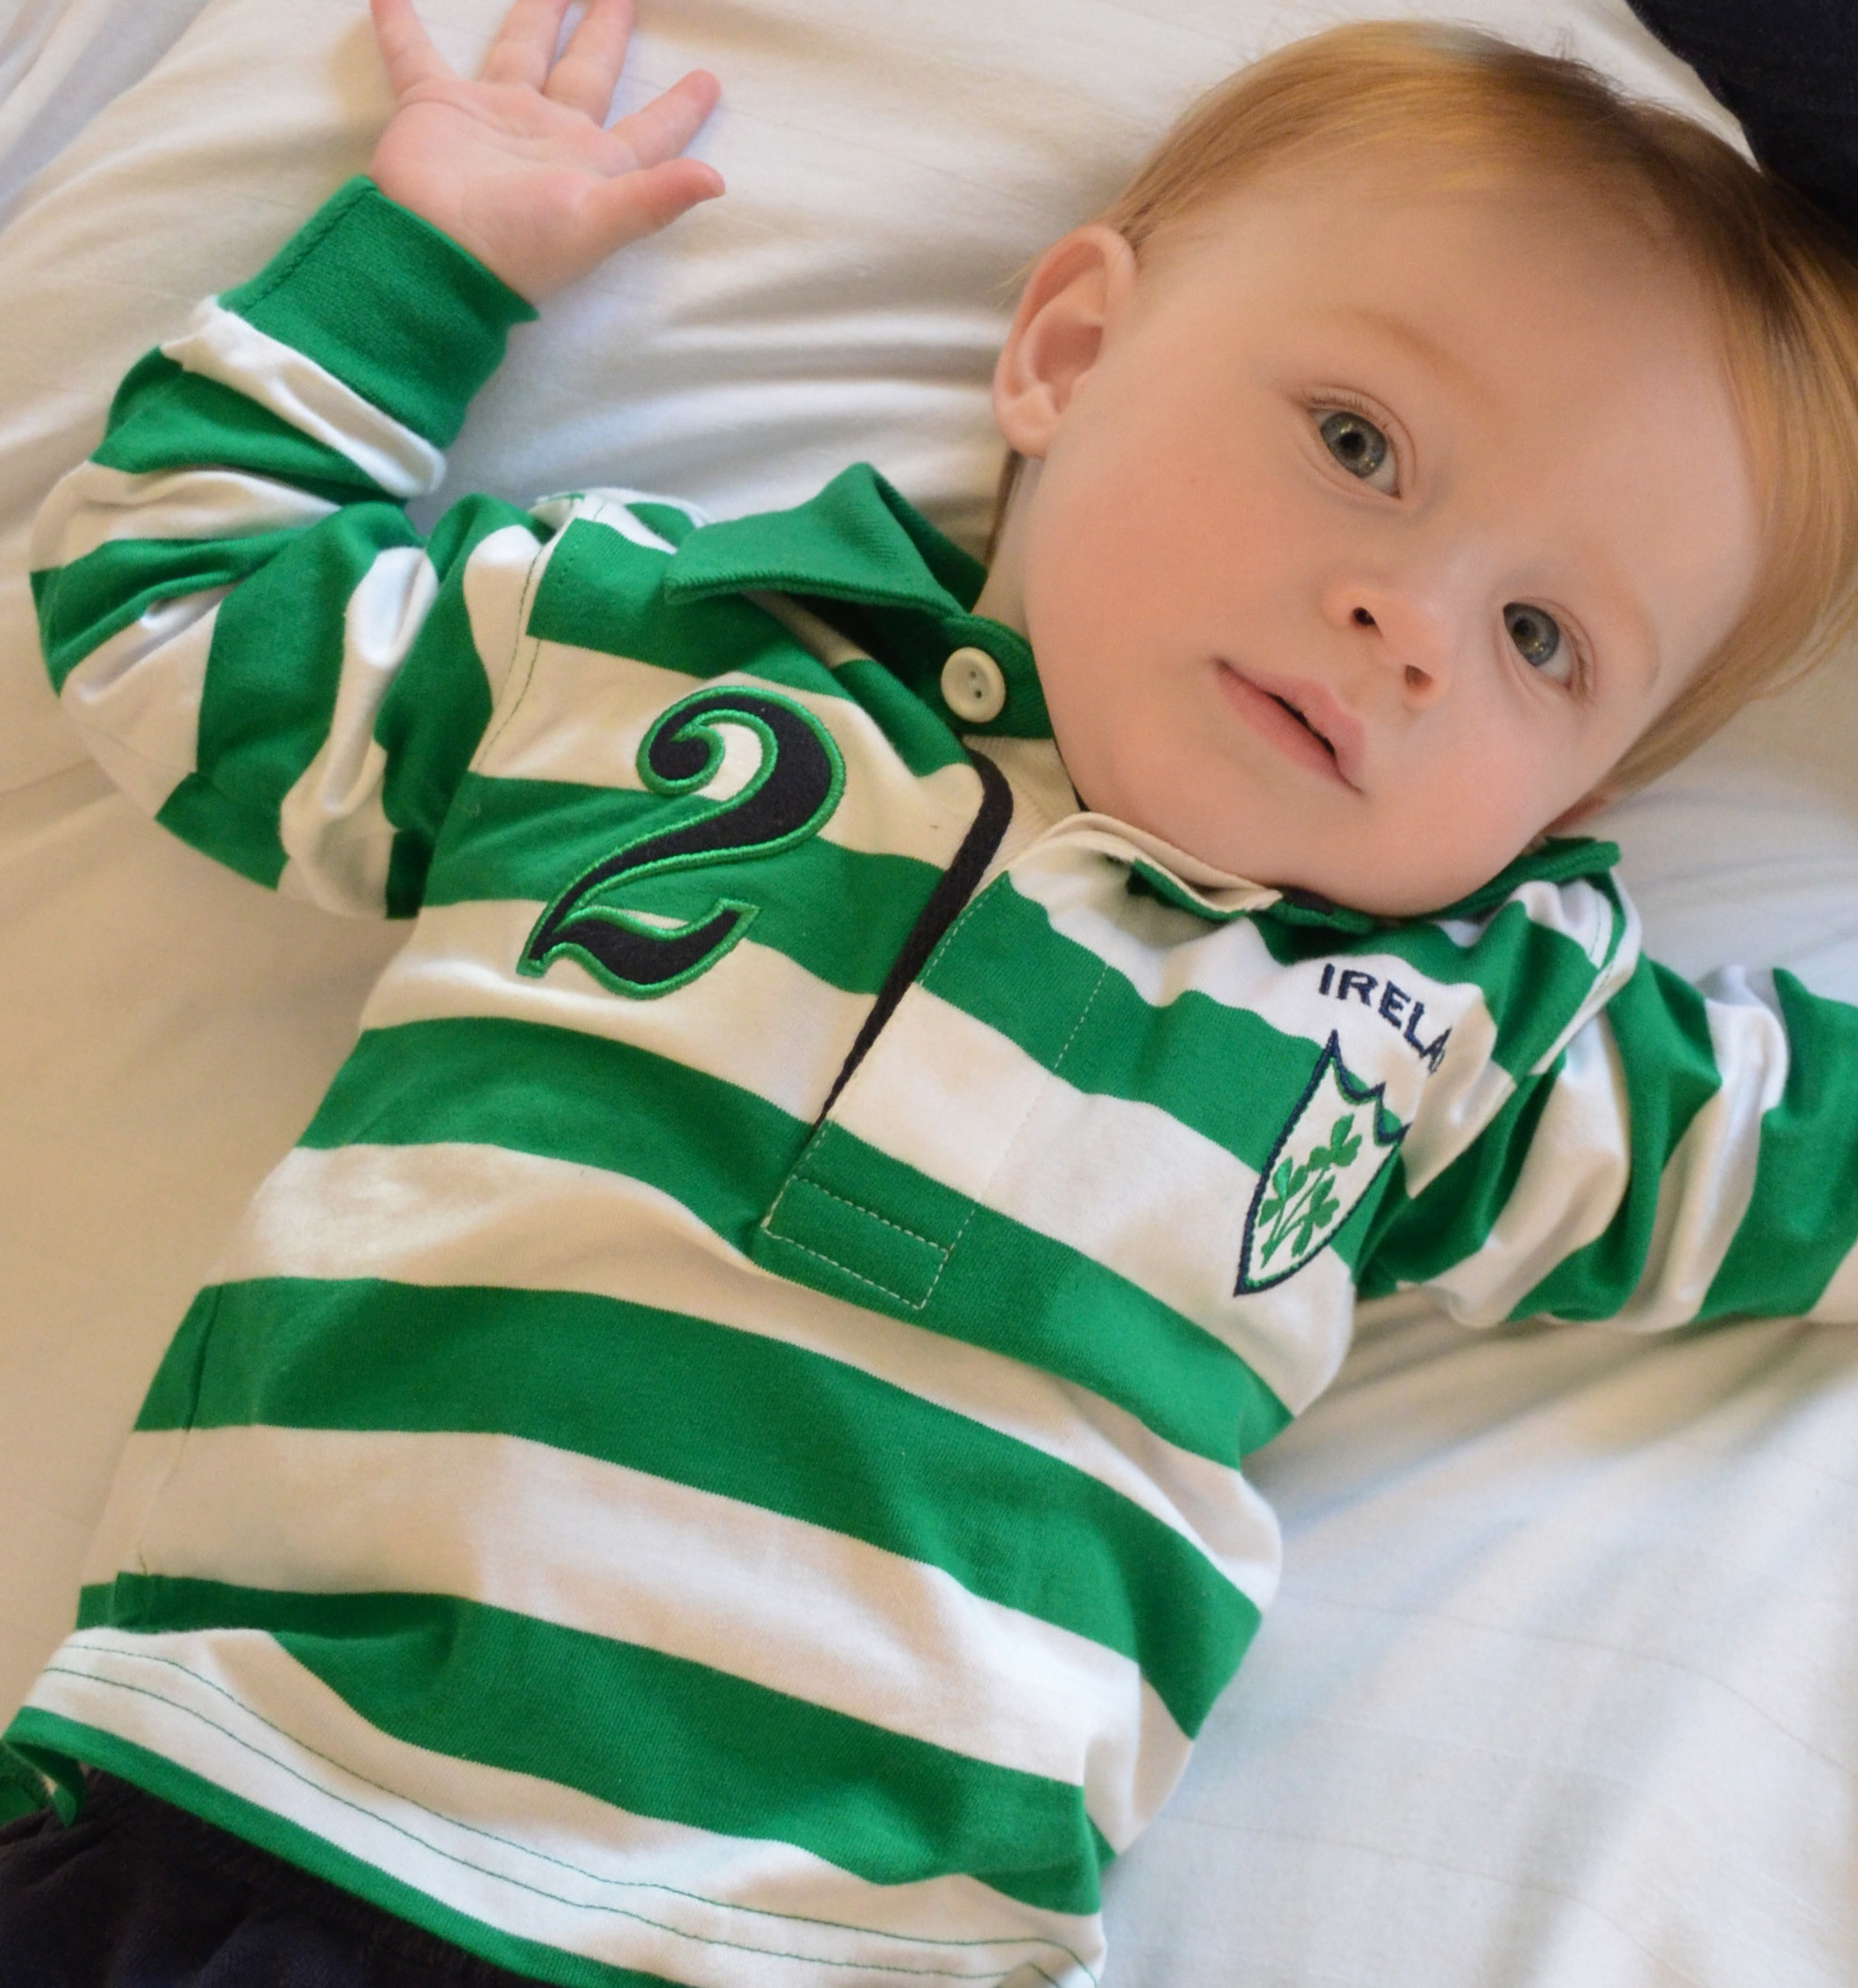 Baby ireland rugby jersey green white ireland jerseys for Irish jewelry stores in nj